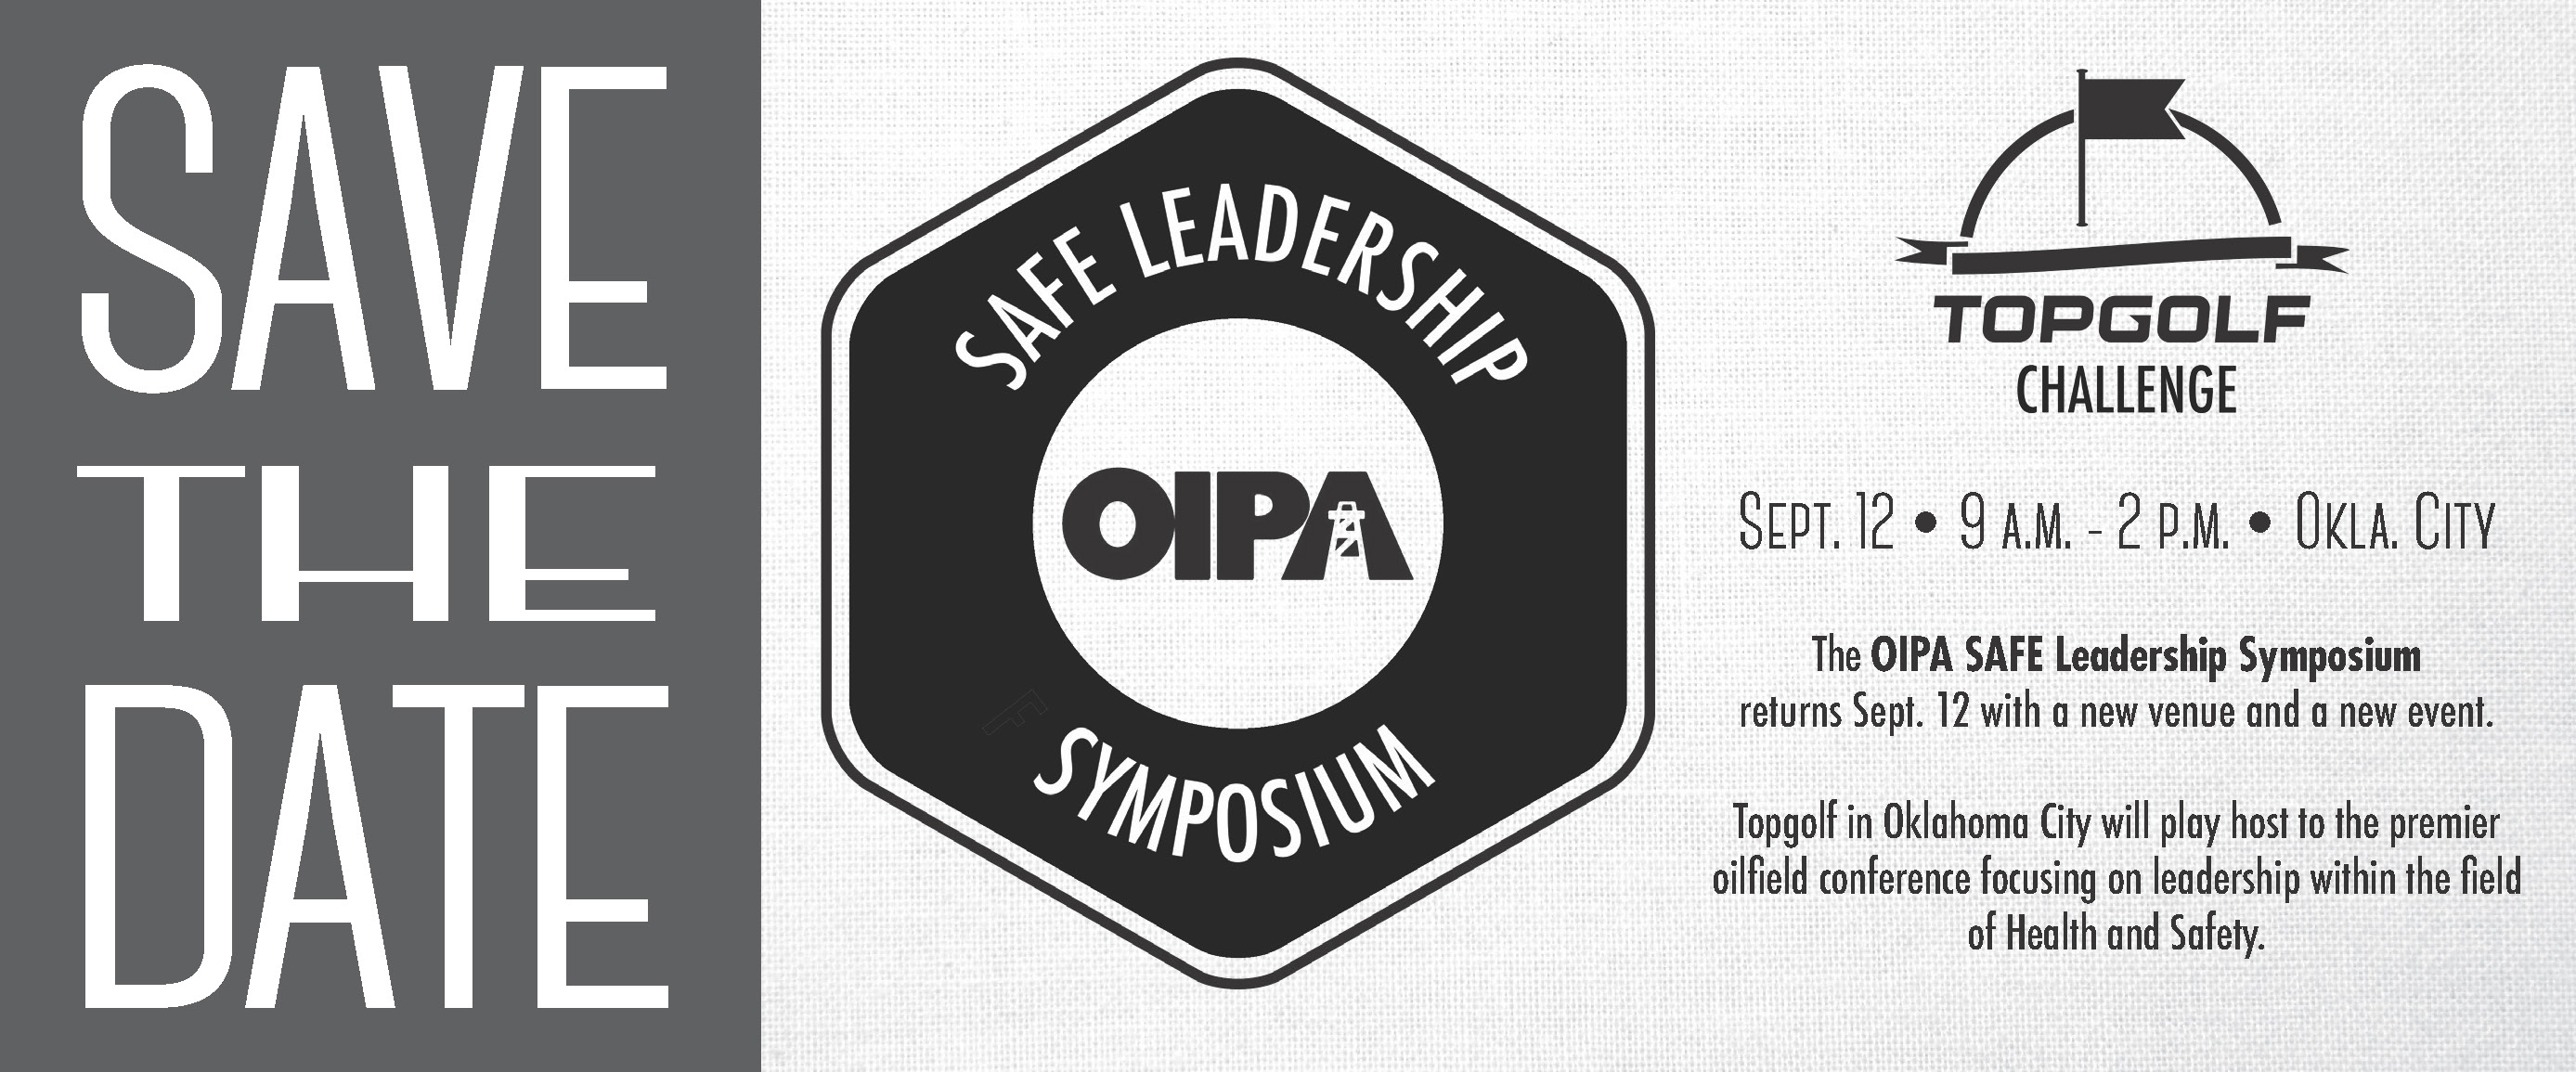 OIPA 2017 SAFE Leadership Symposium & Topgolf Challenge